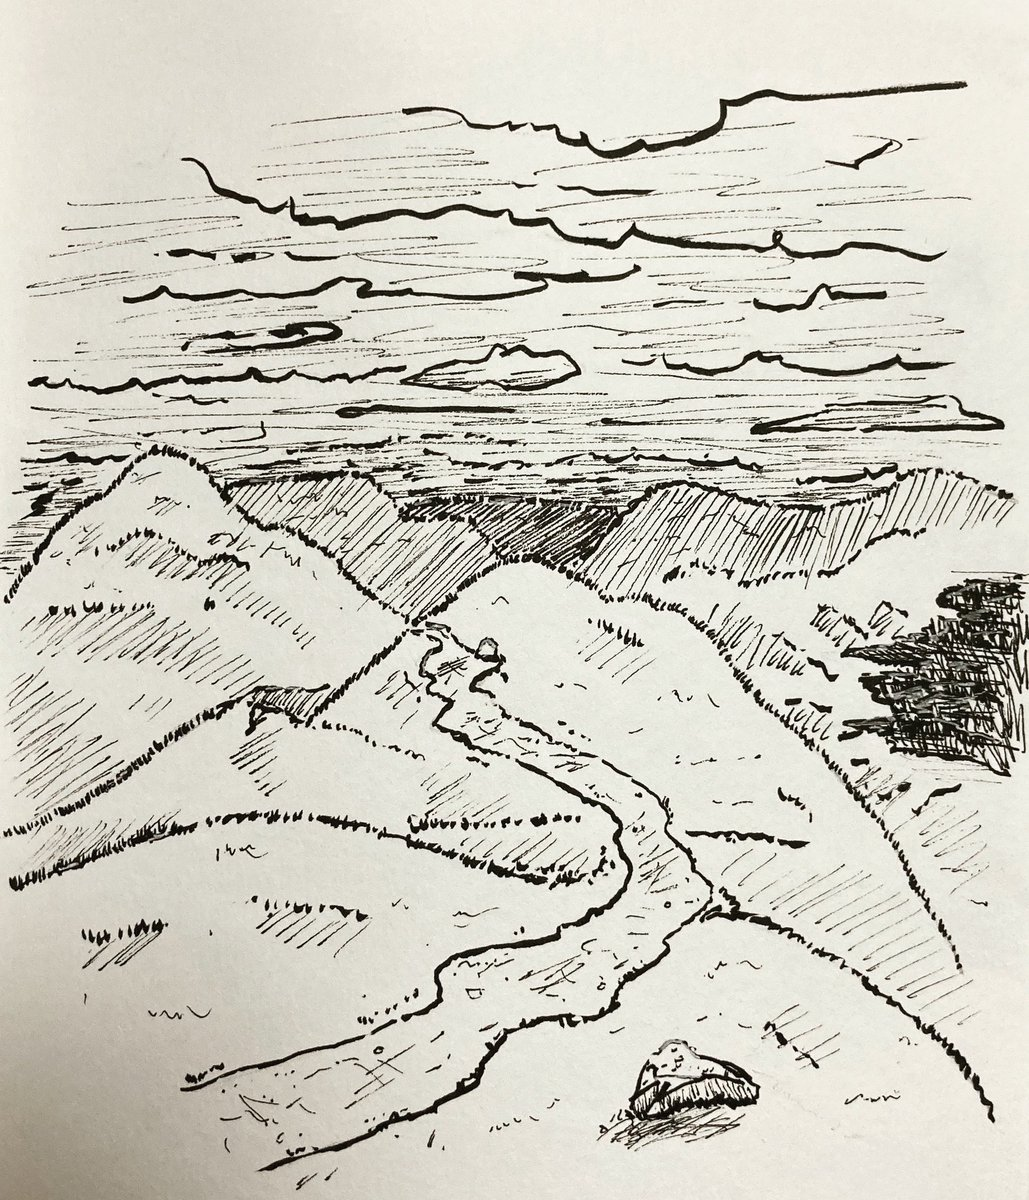 """Scape #13"" ink on parchment , 8x6 inch @JoshuaMMoranArt #ArtistOnTwitter #art #artist #artwork #artistsoninstagram #visualart #contemporaryart #ink #inkdrawing #sketchbook #ptsd #landscape #unpredictable https://t.co/OJfeV1AtoG"